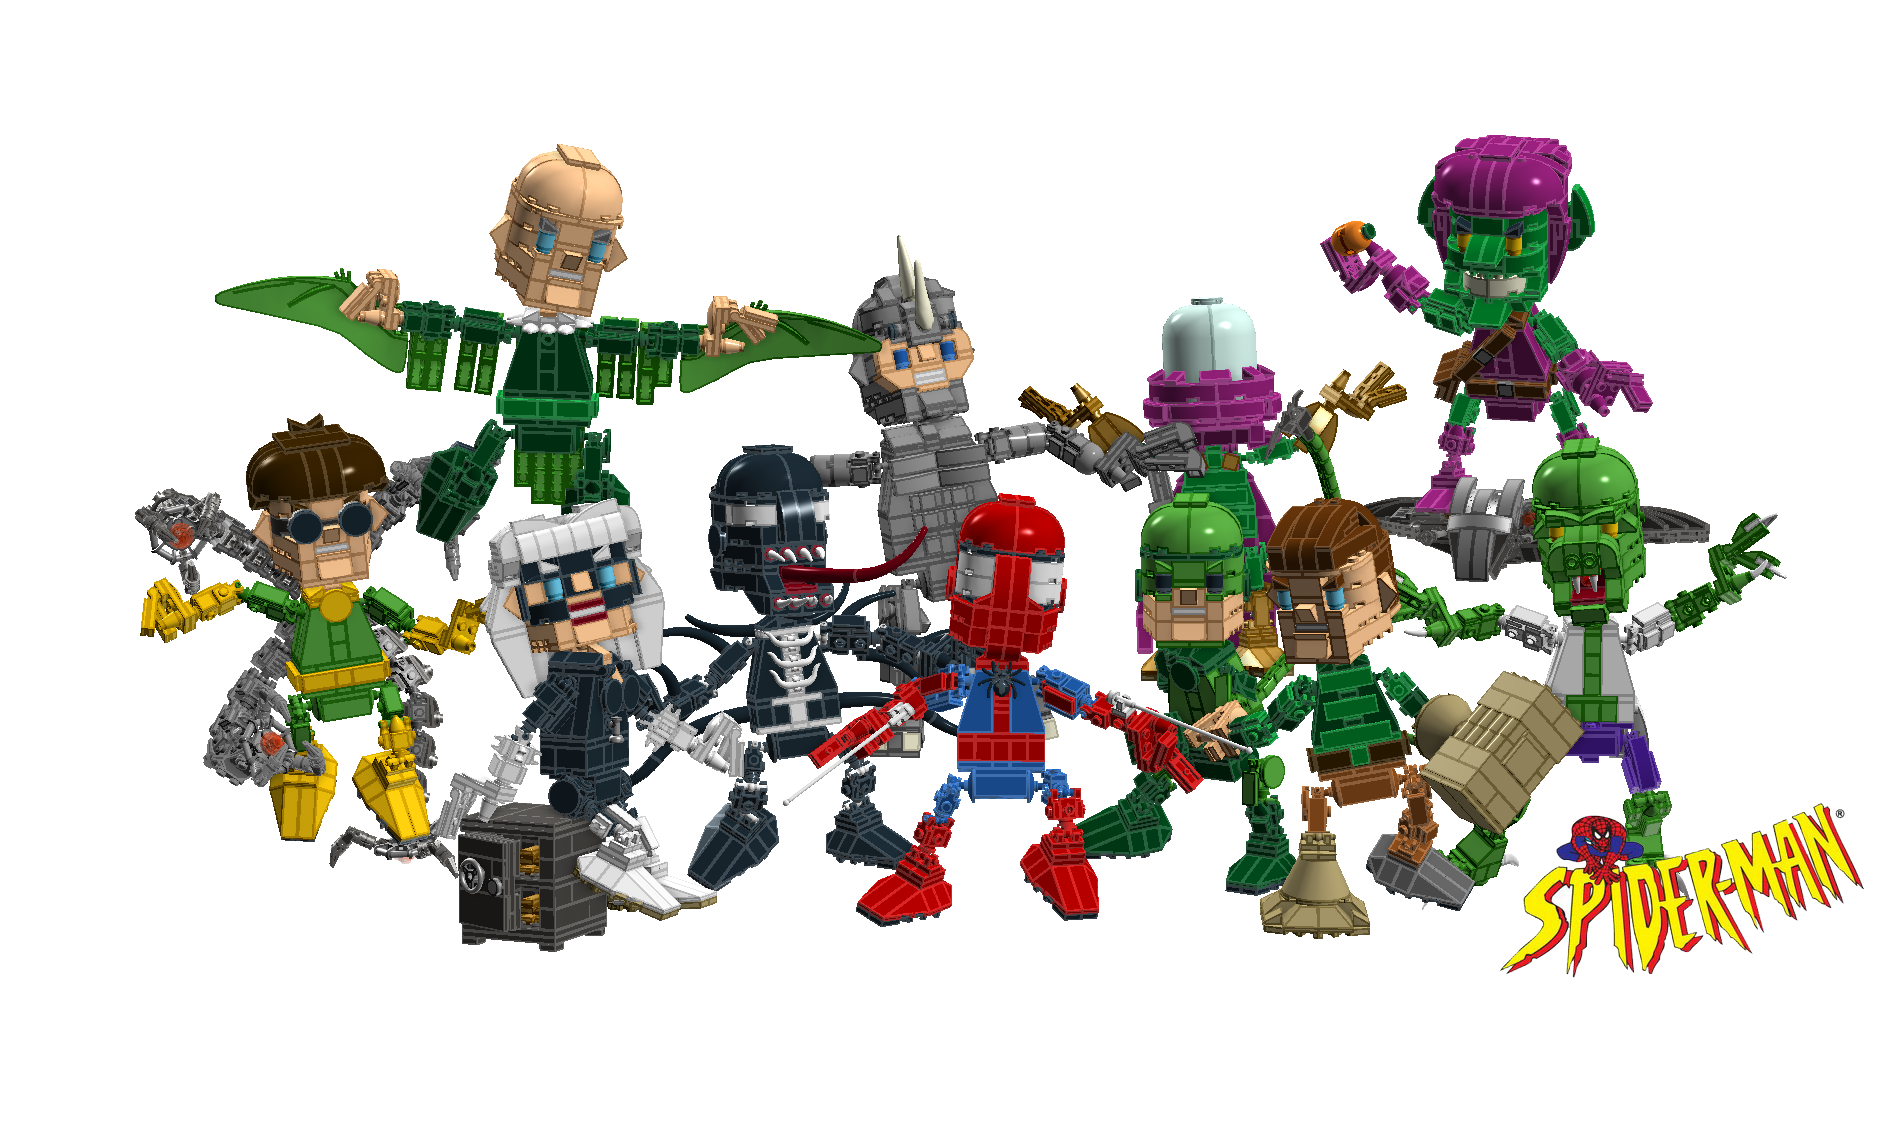 Marvel Comics Spiderman - Lego Cuusoo ProjectLego Marvel Spider Man